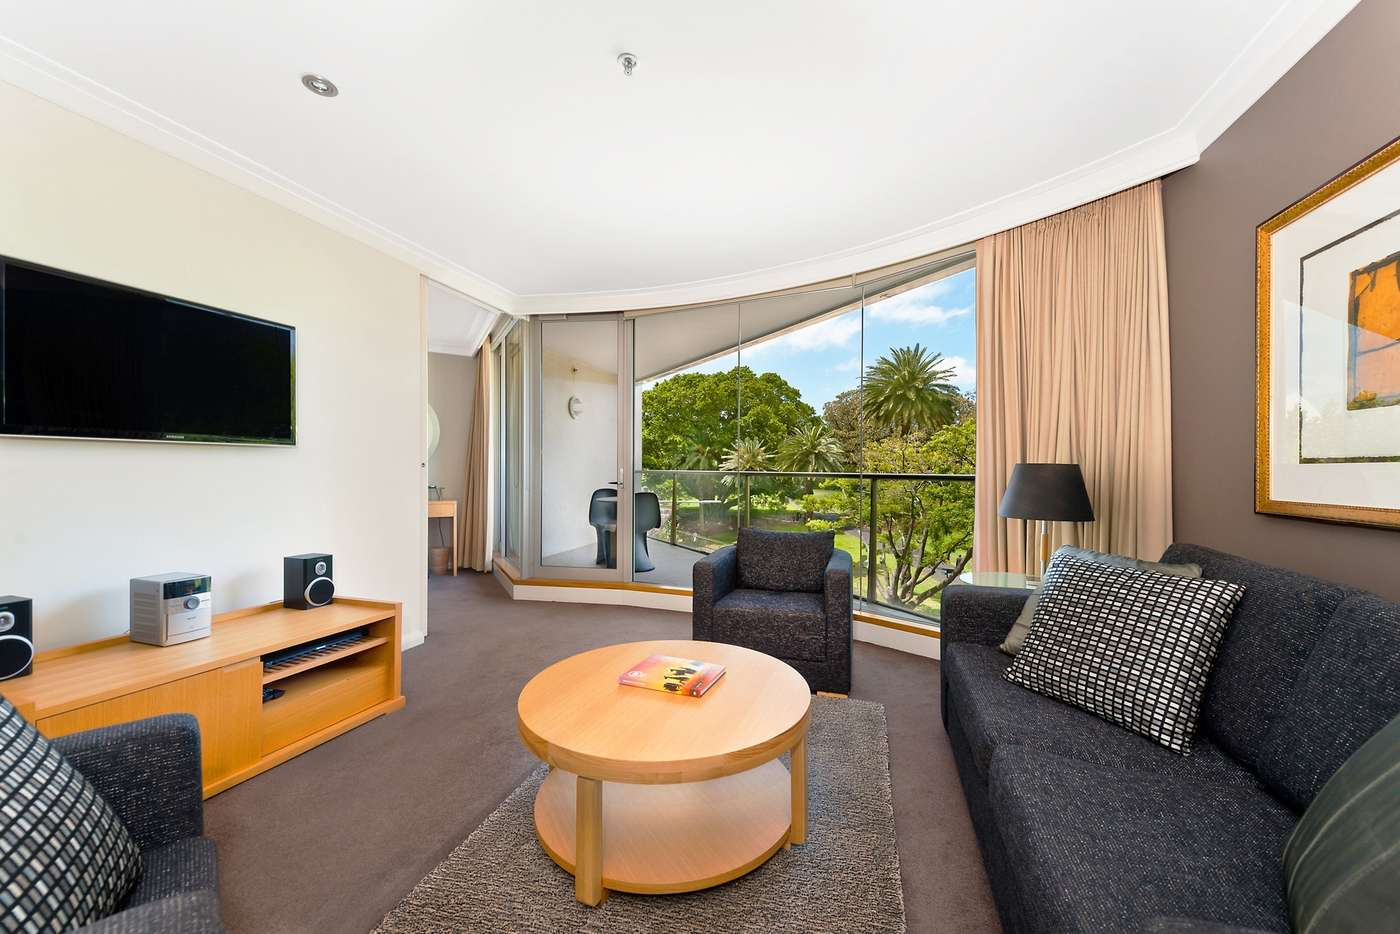 Main view of Homely apartment listing, 613/61 Macquarie Street, Sydney NSW 2000